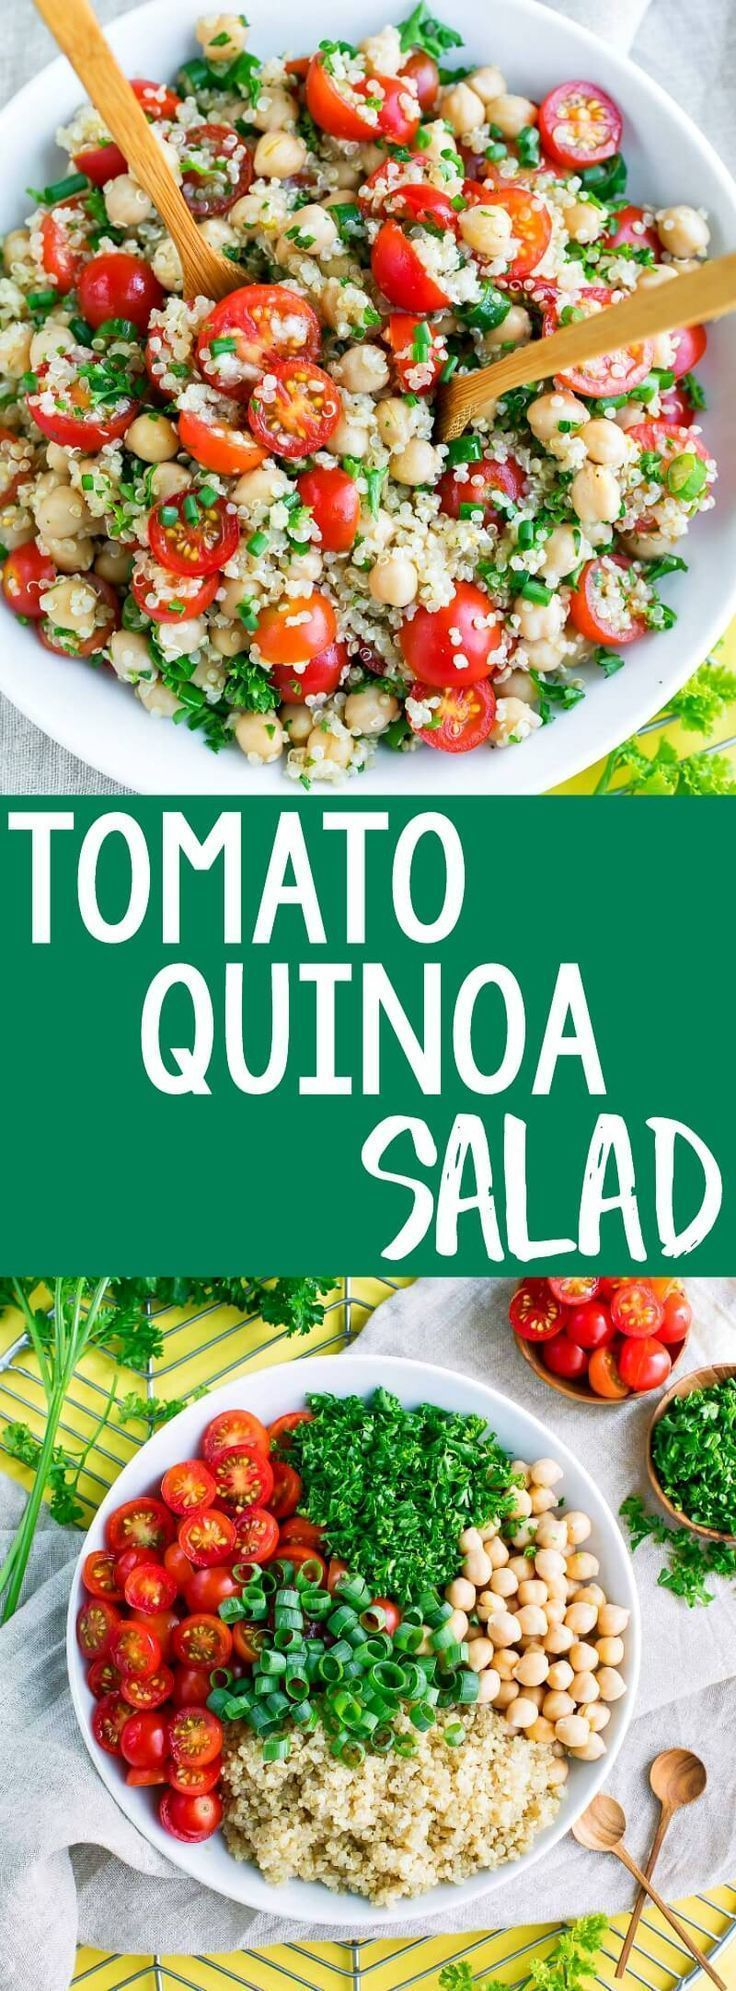 It s time to add another tasty quinoa recipe to our meal prep game! This Tomato Quinoa Salad is fas